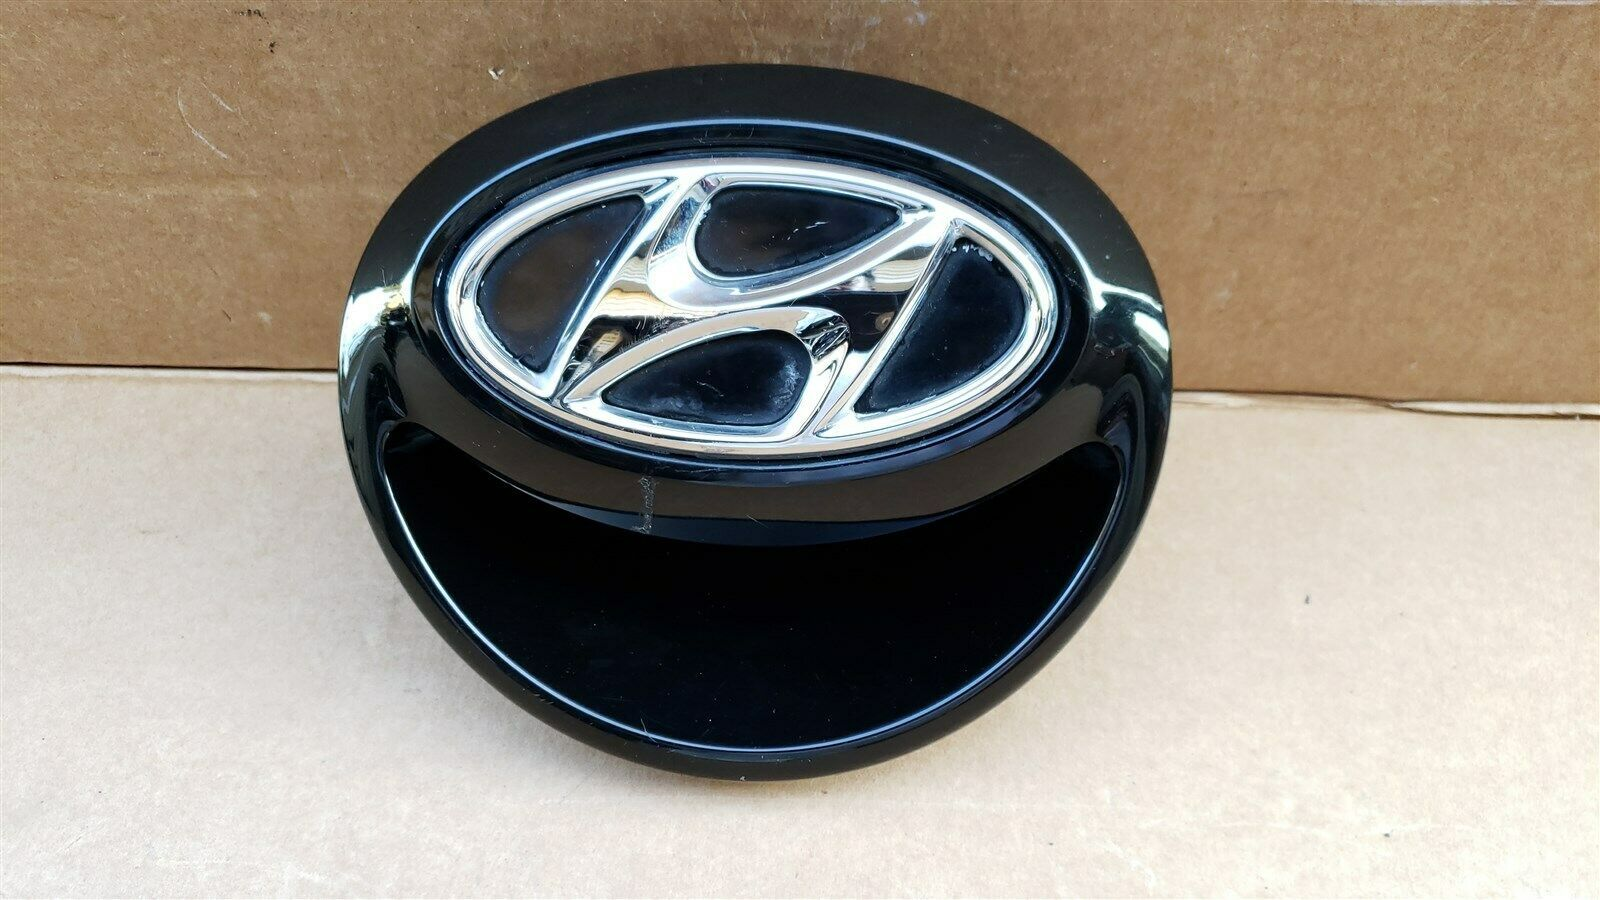 12-16 Hyundai Veloster Rear Hatch Handle Tailgate Emblem